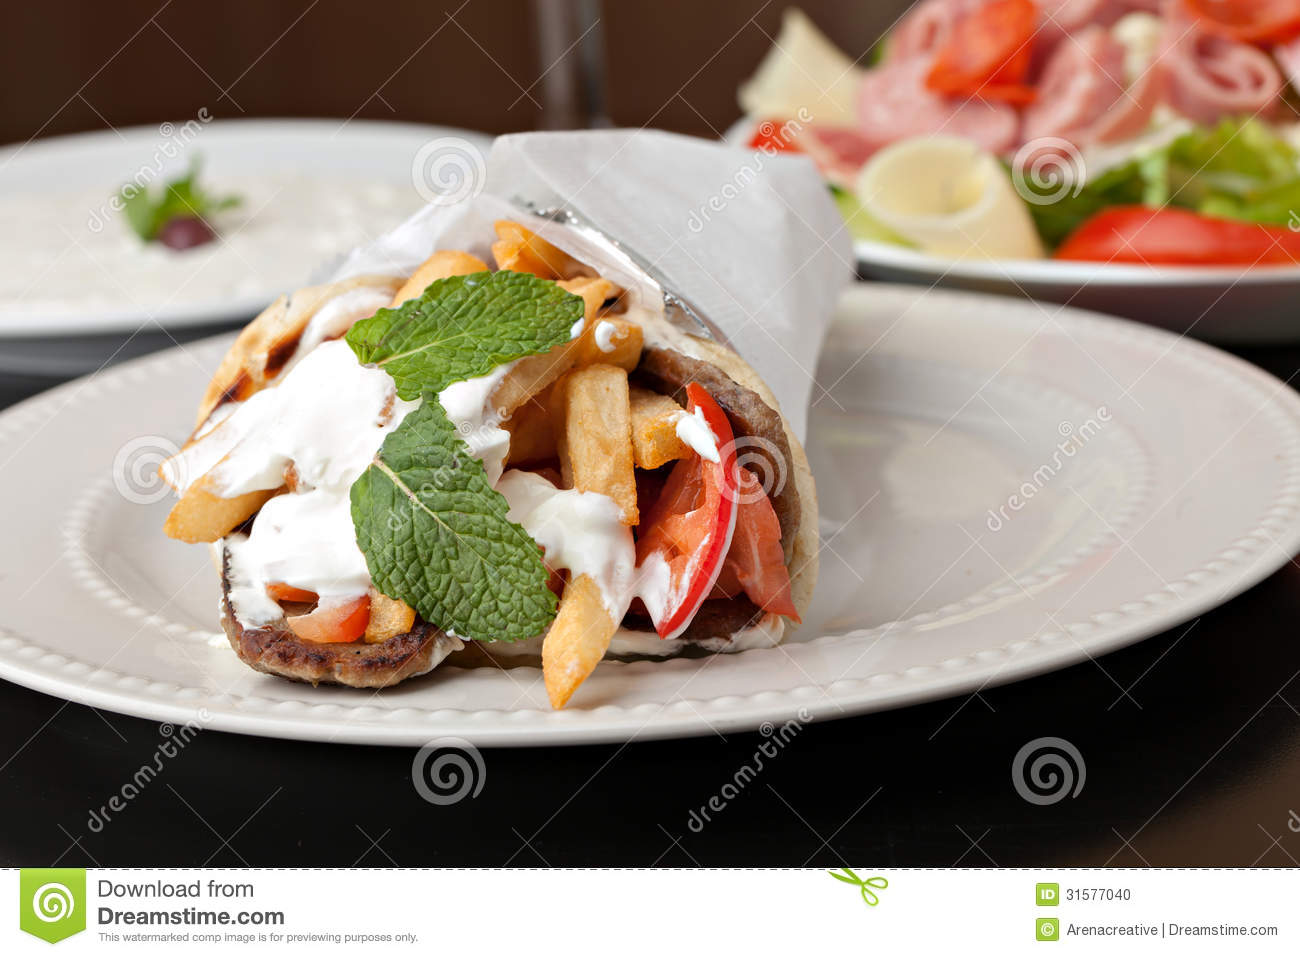 Greek Gyro Wrap Stock Photo   Image  31577040